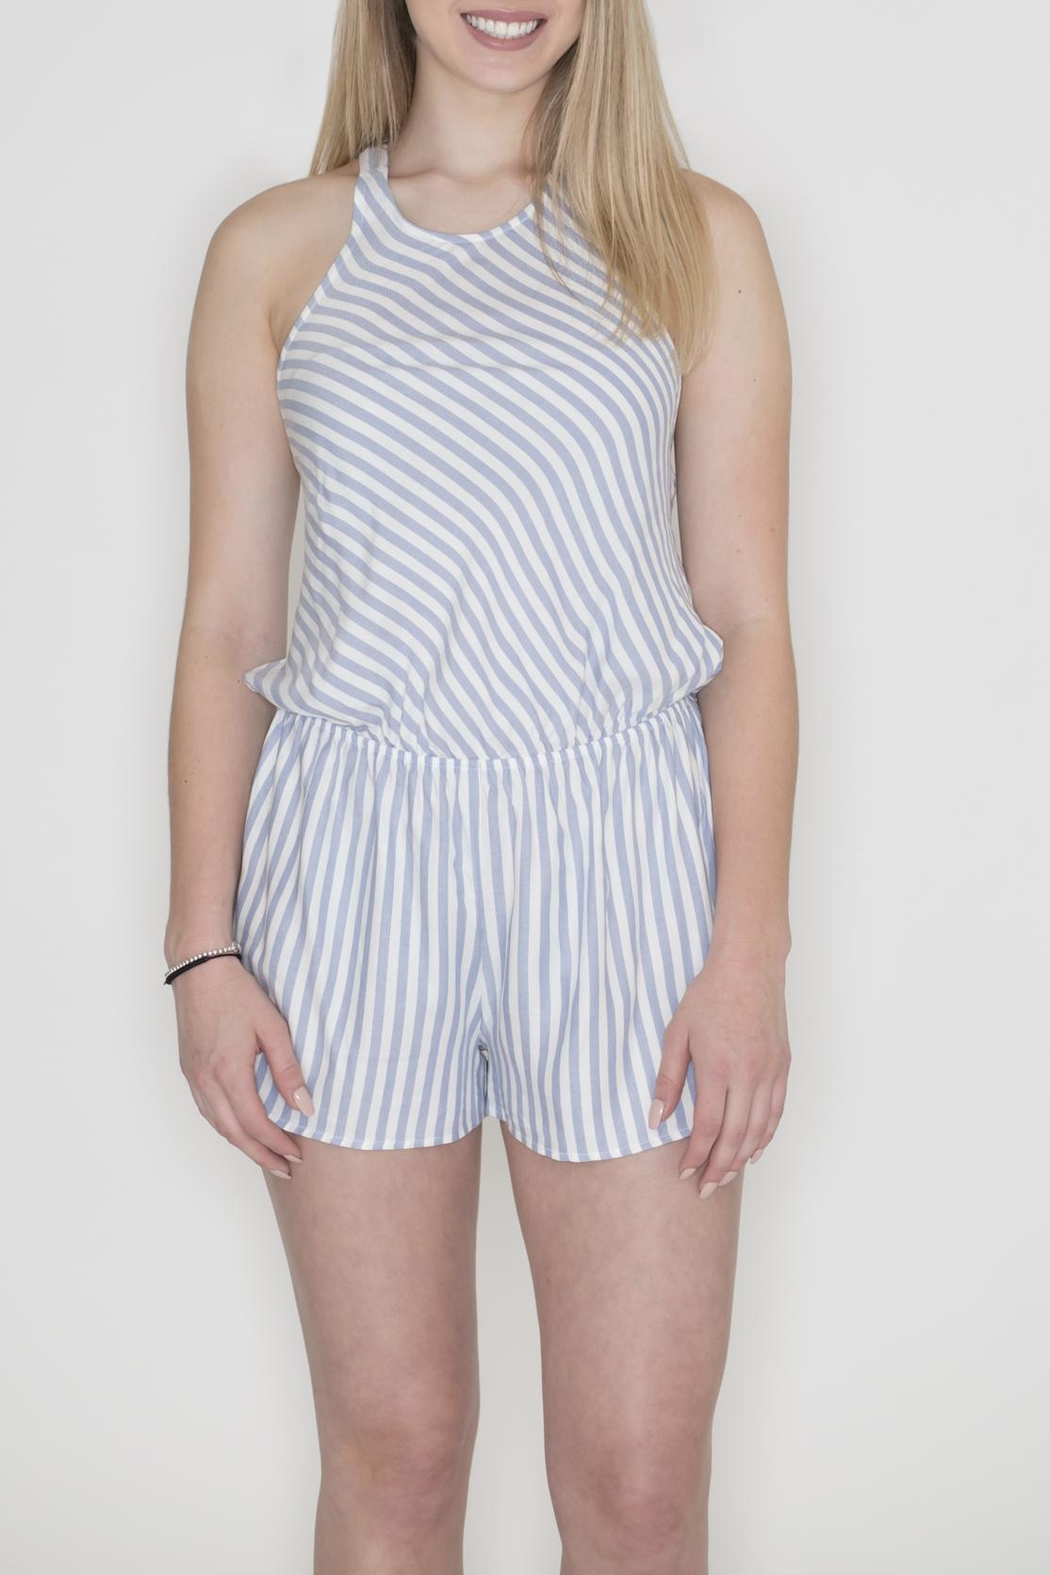 Cherish Striped Crisscross Romper - Main Image